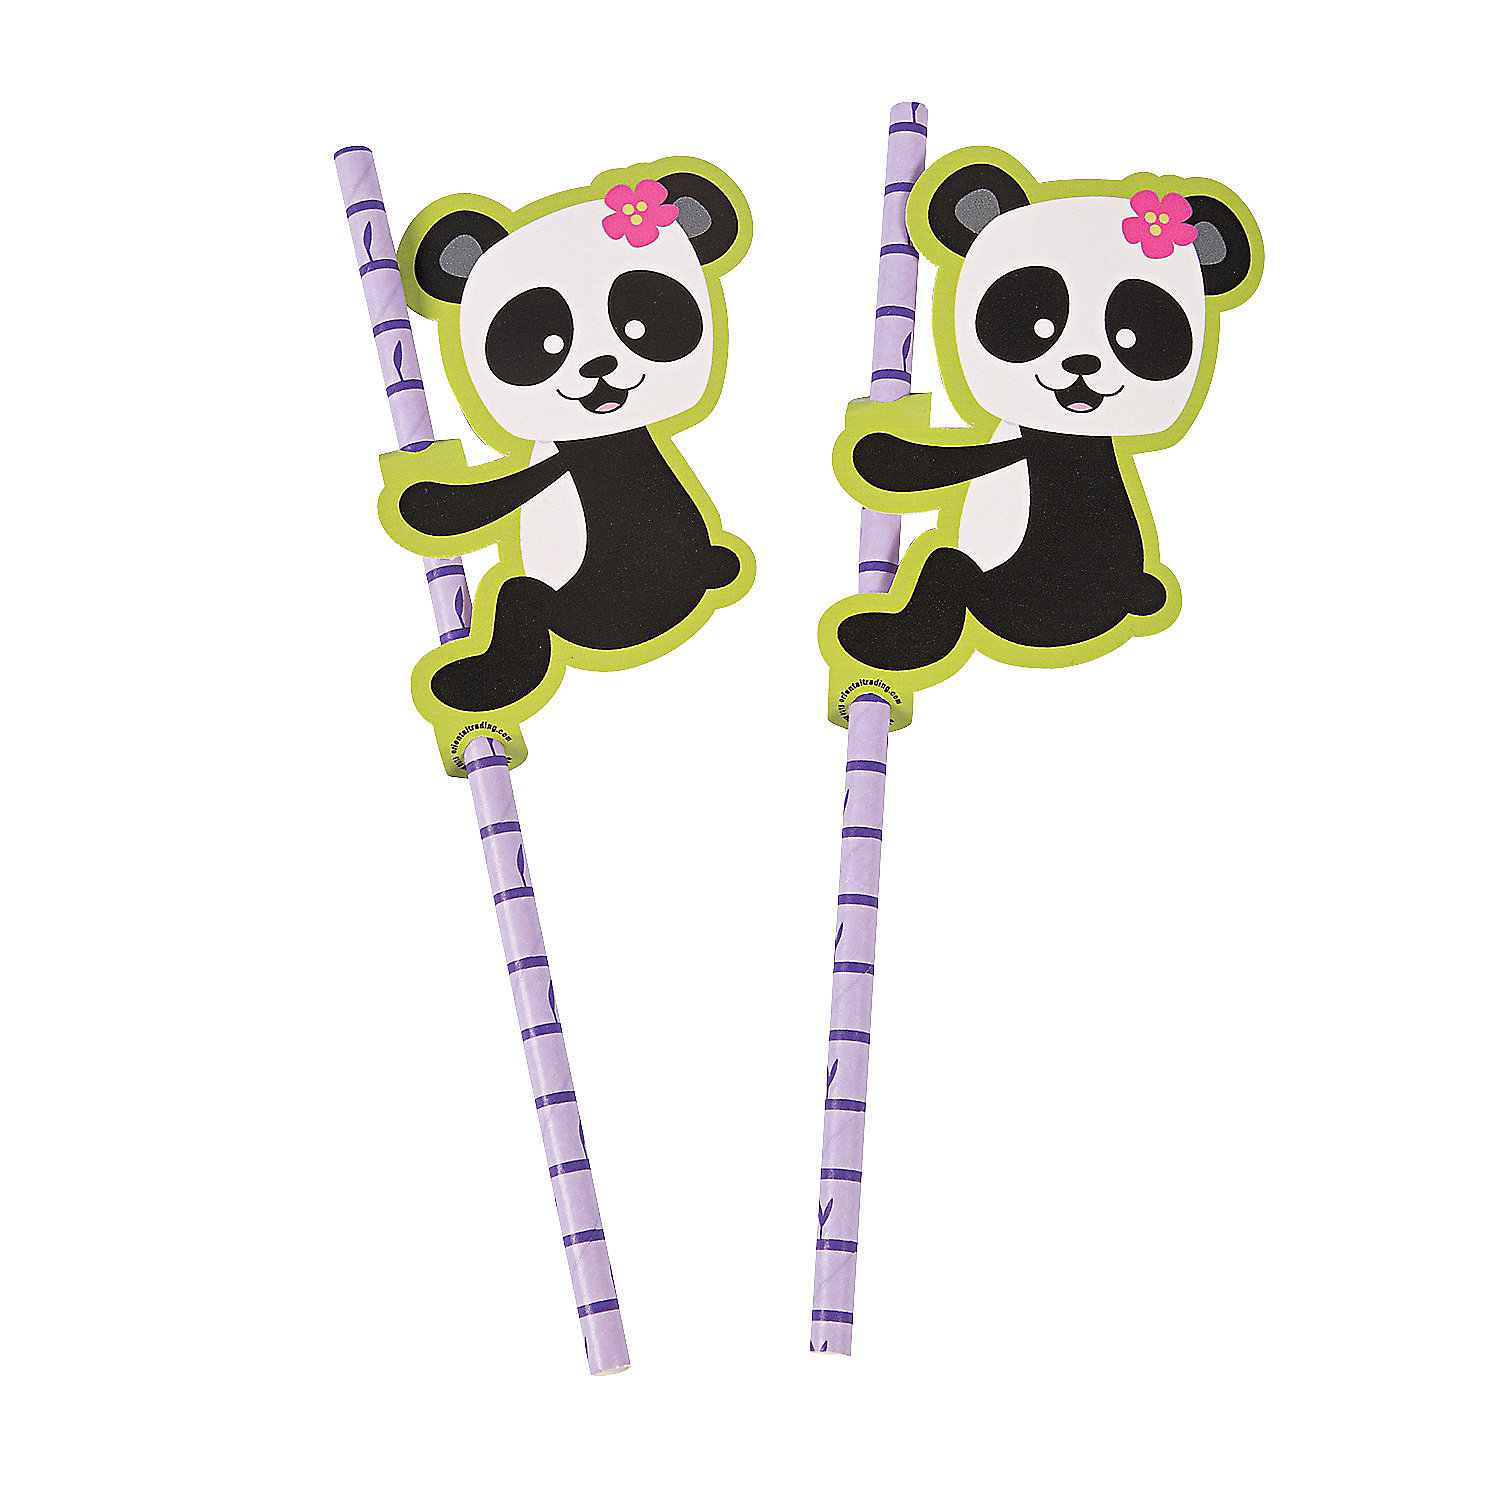 IN-13706106 Panda Party Paper Straws 24 Piece(s)